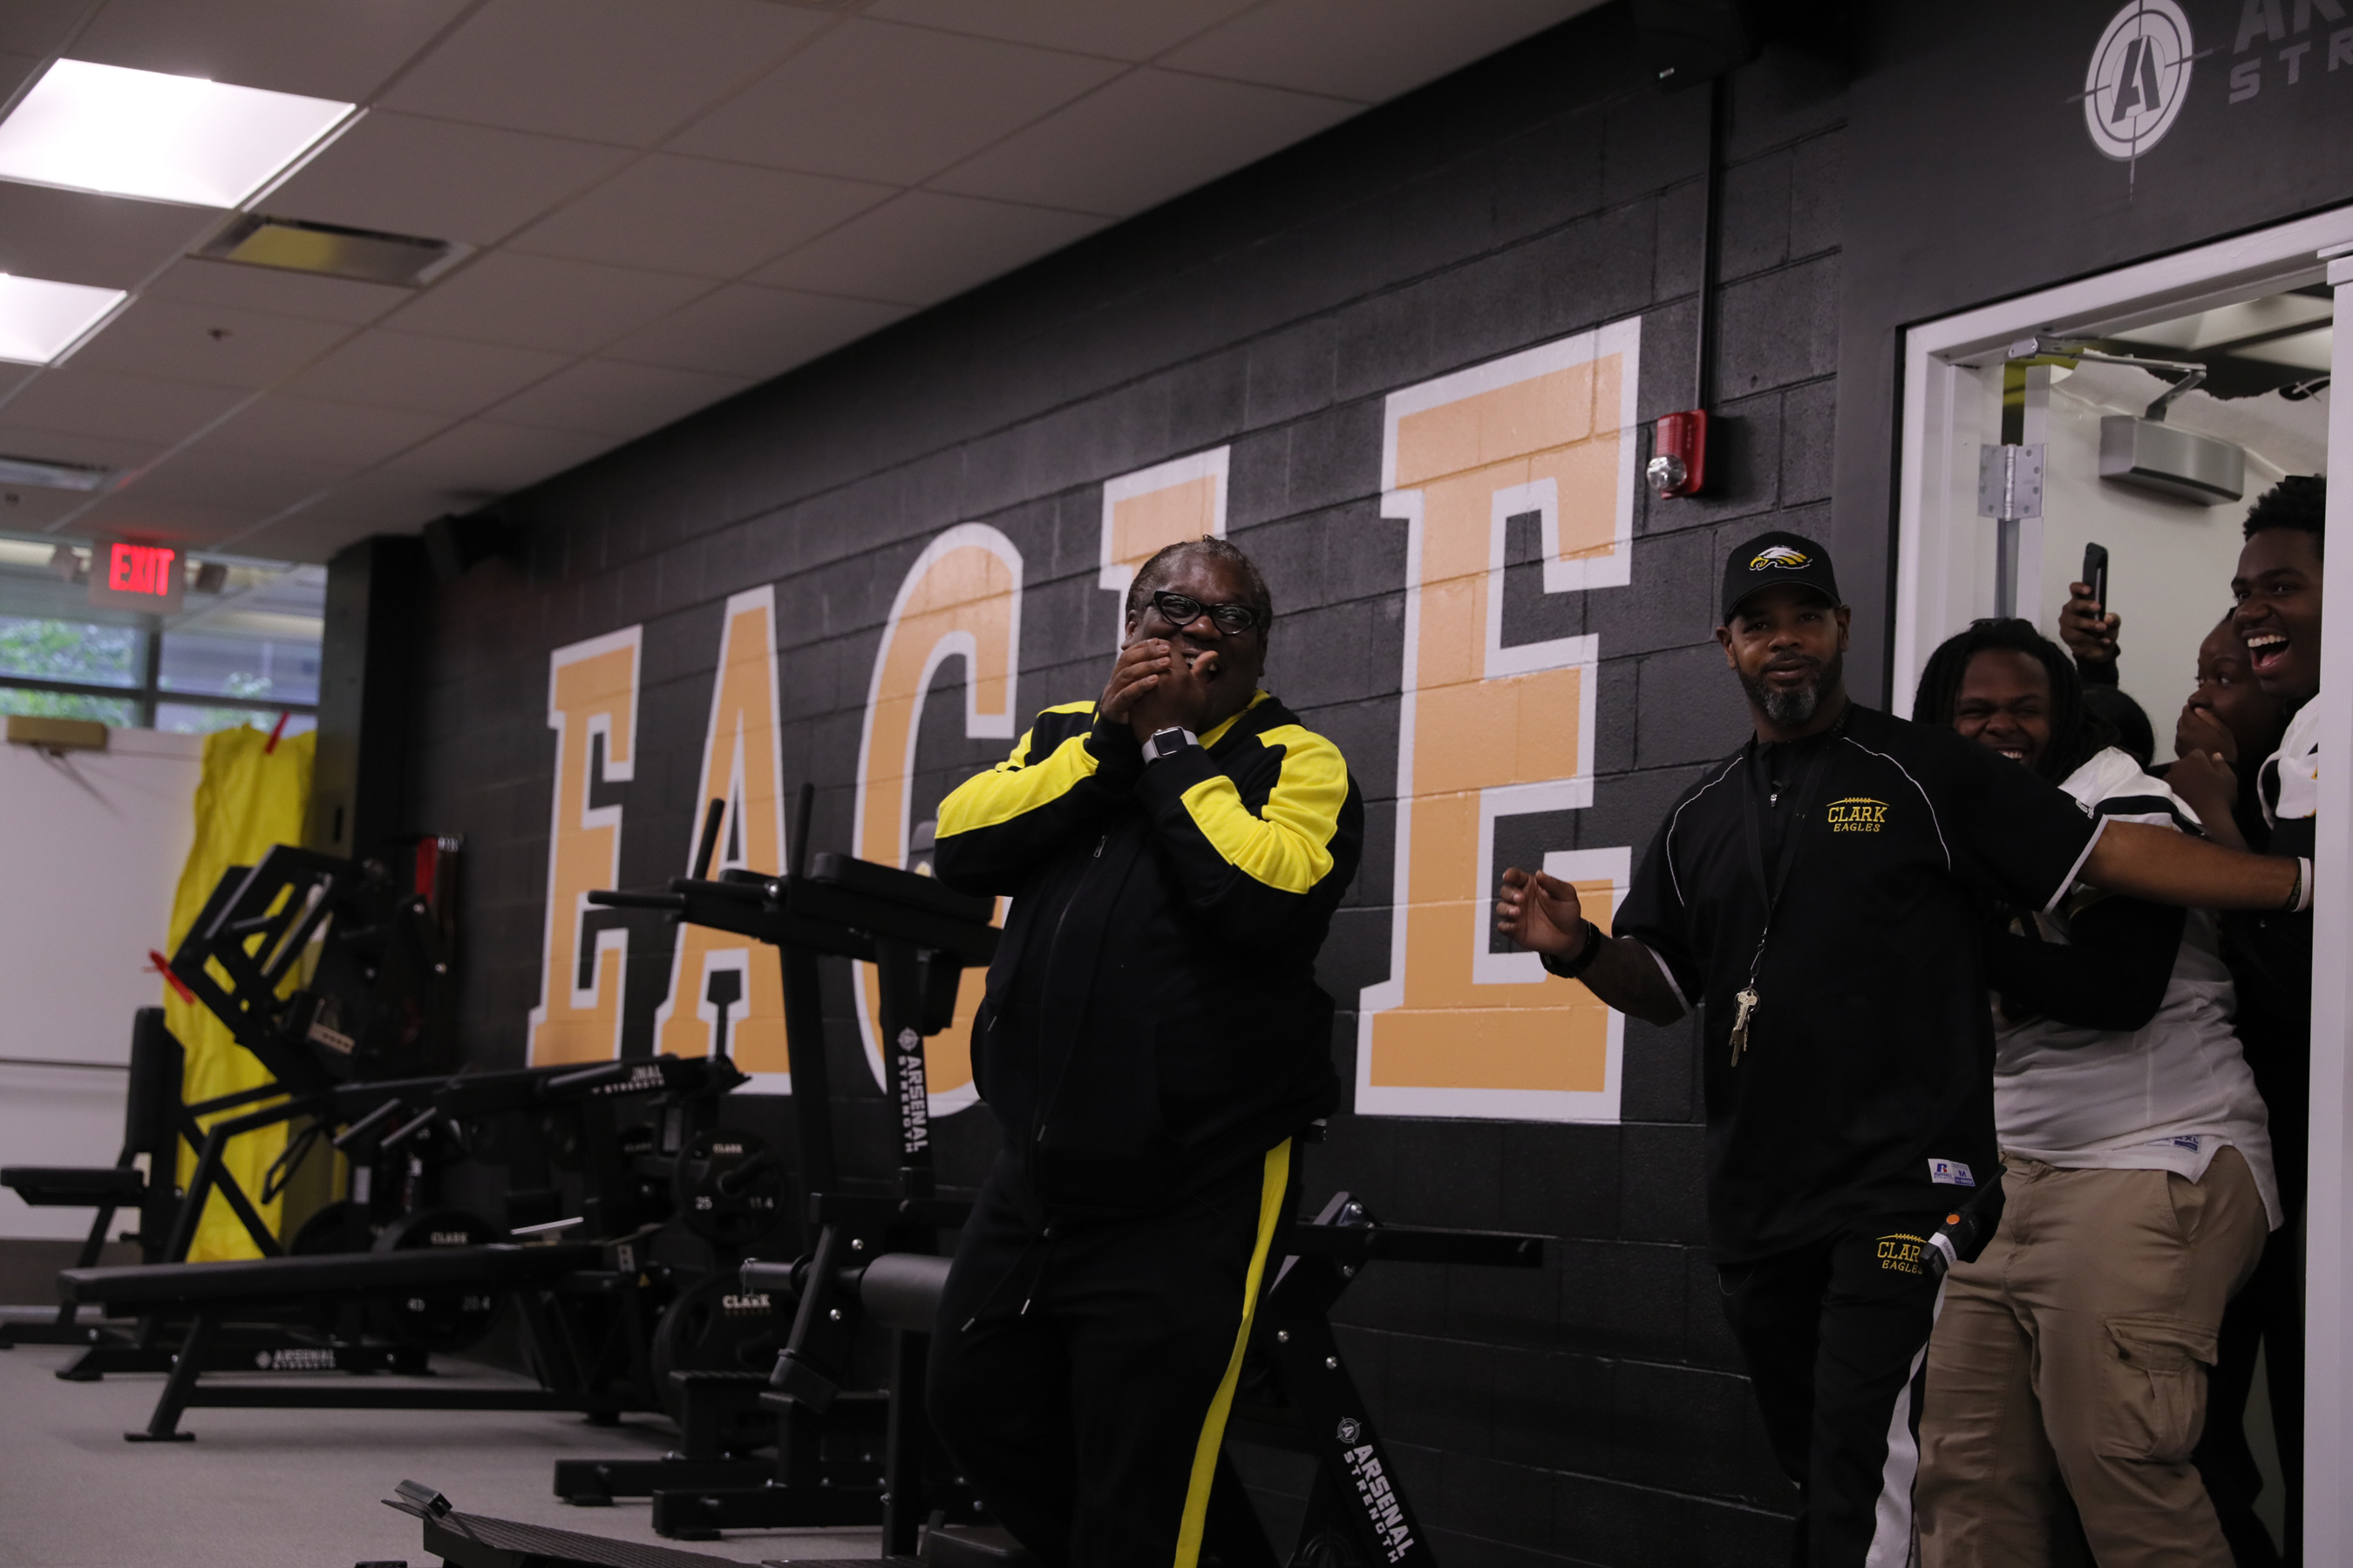 Michele Clark students and principal react to their brand new state-of-the-art weight room